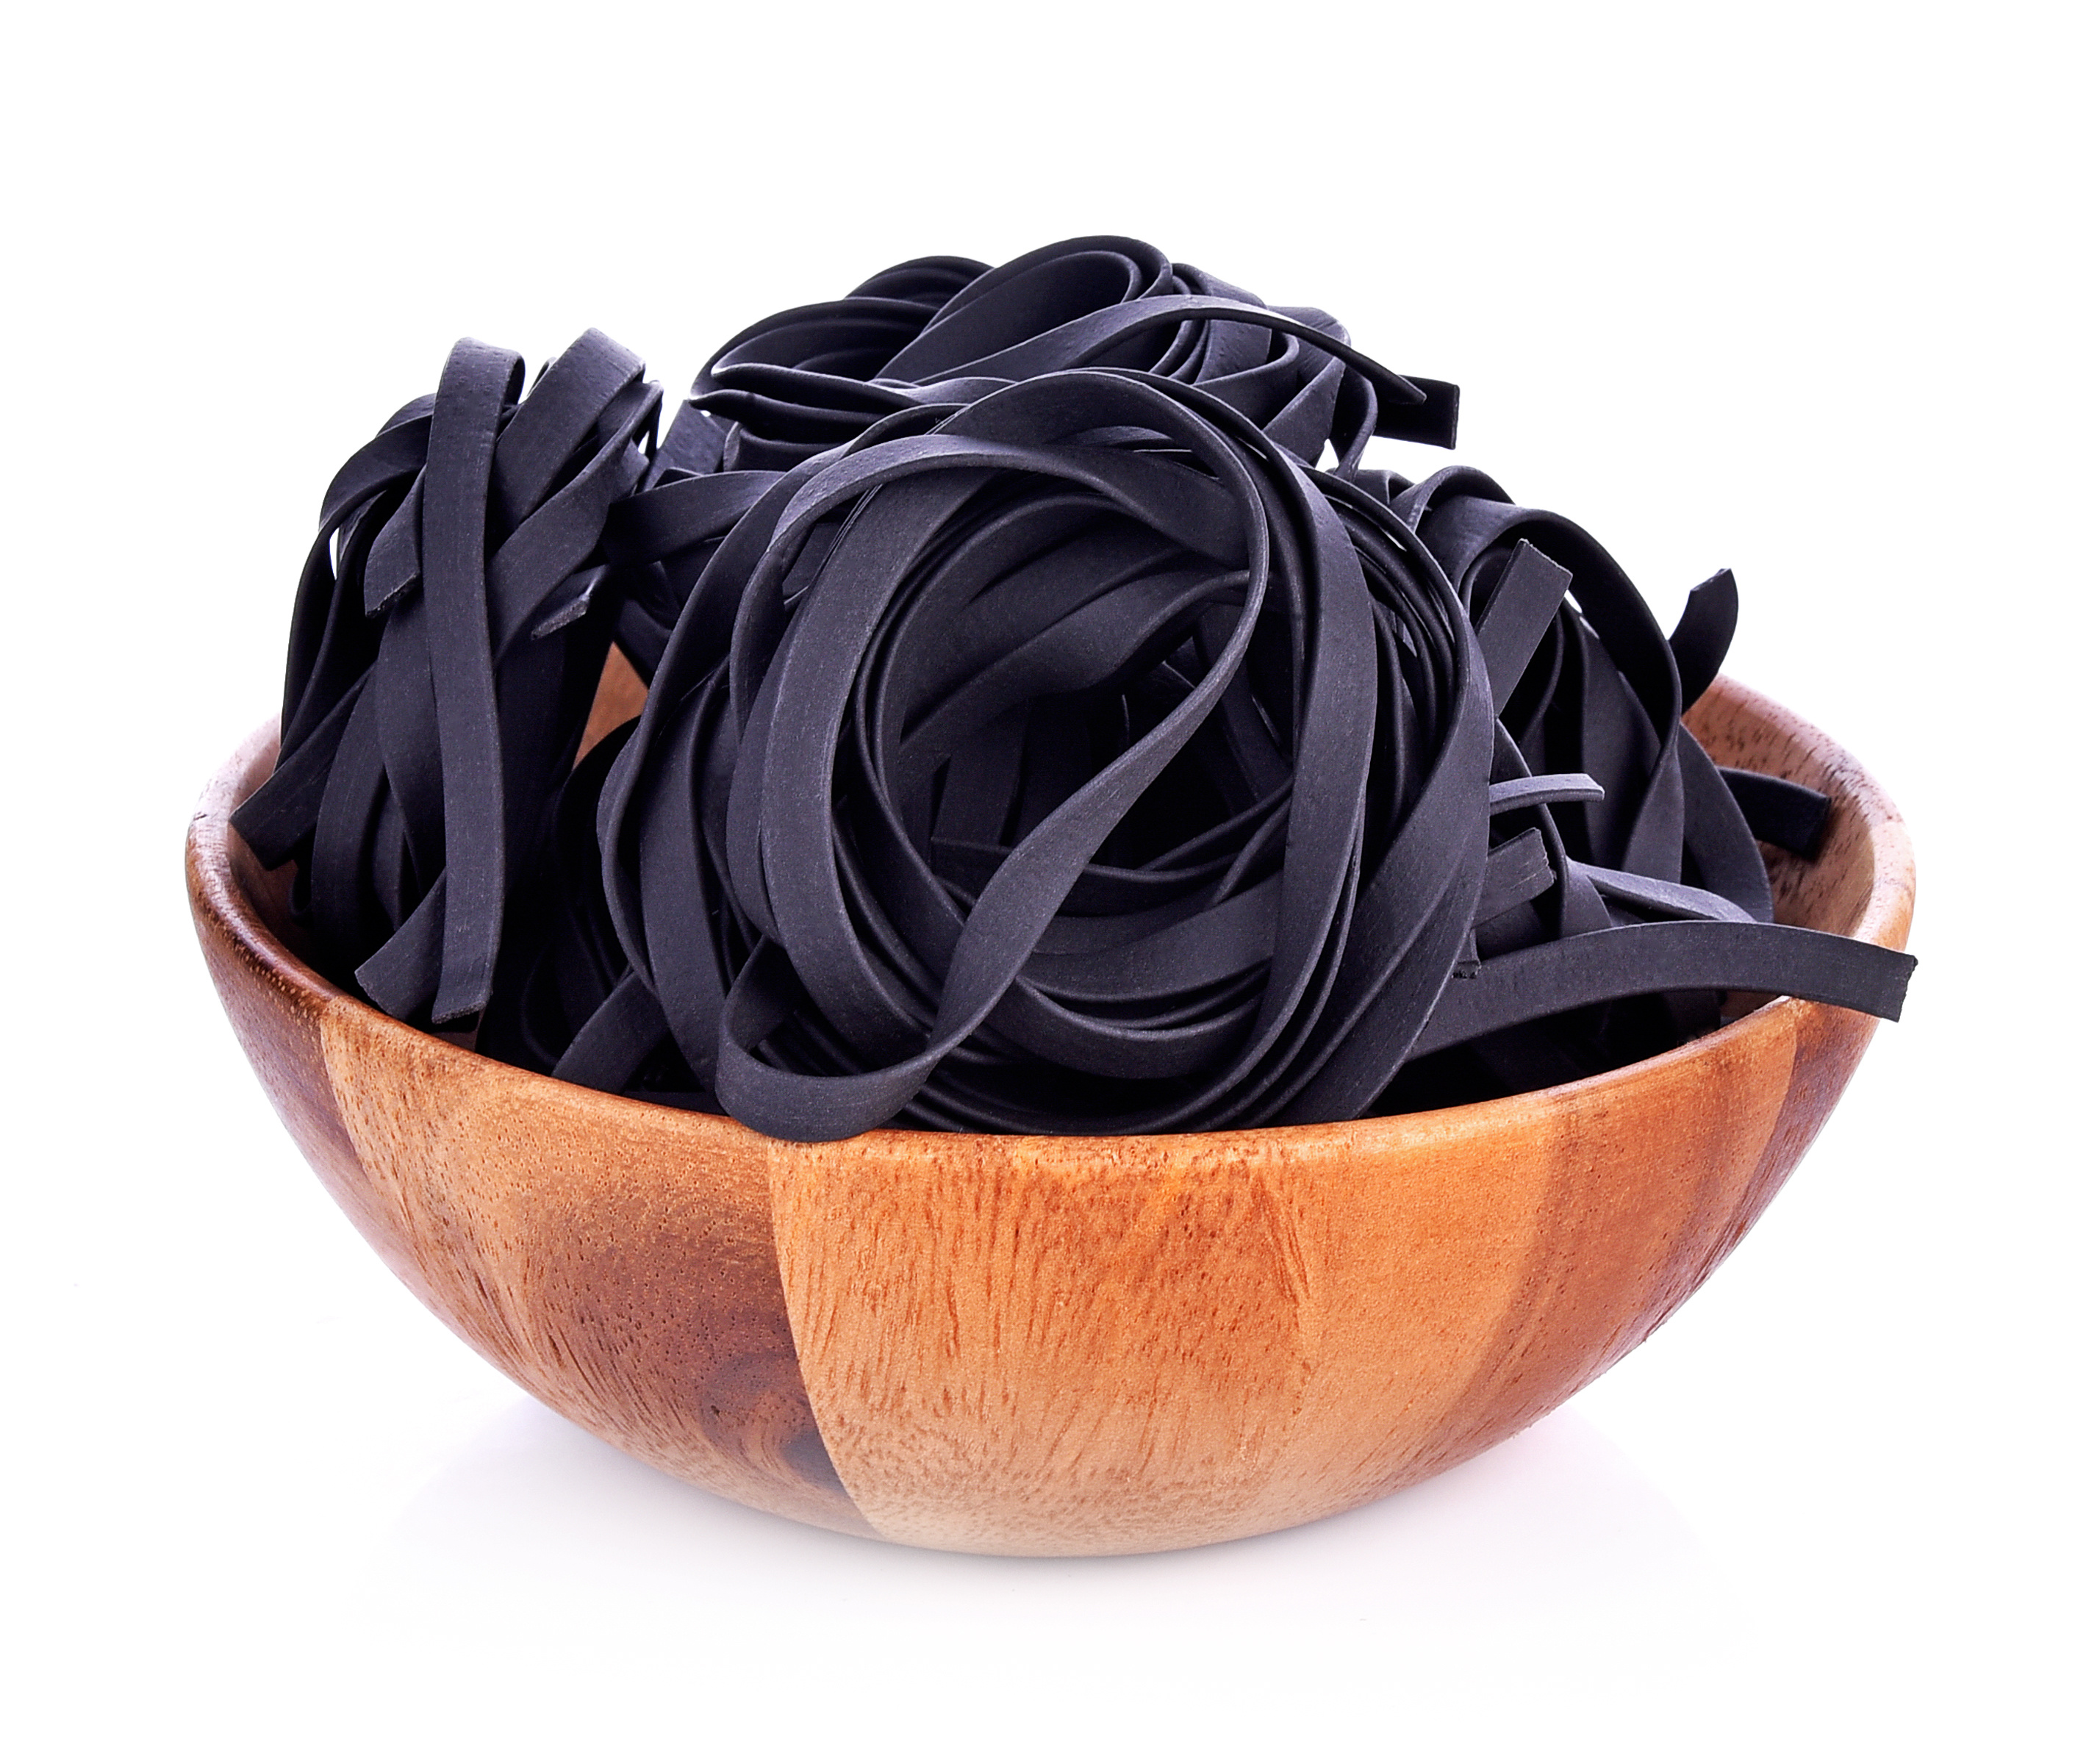 Squid ink pasta in bowl on white background